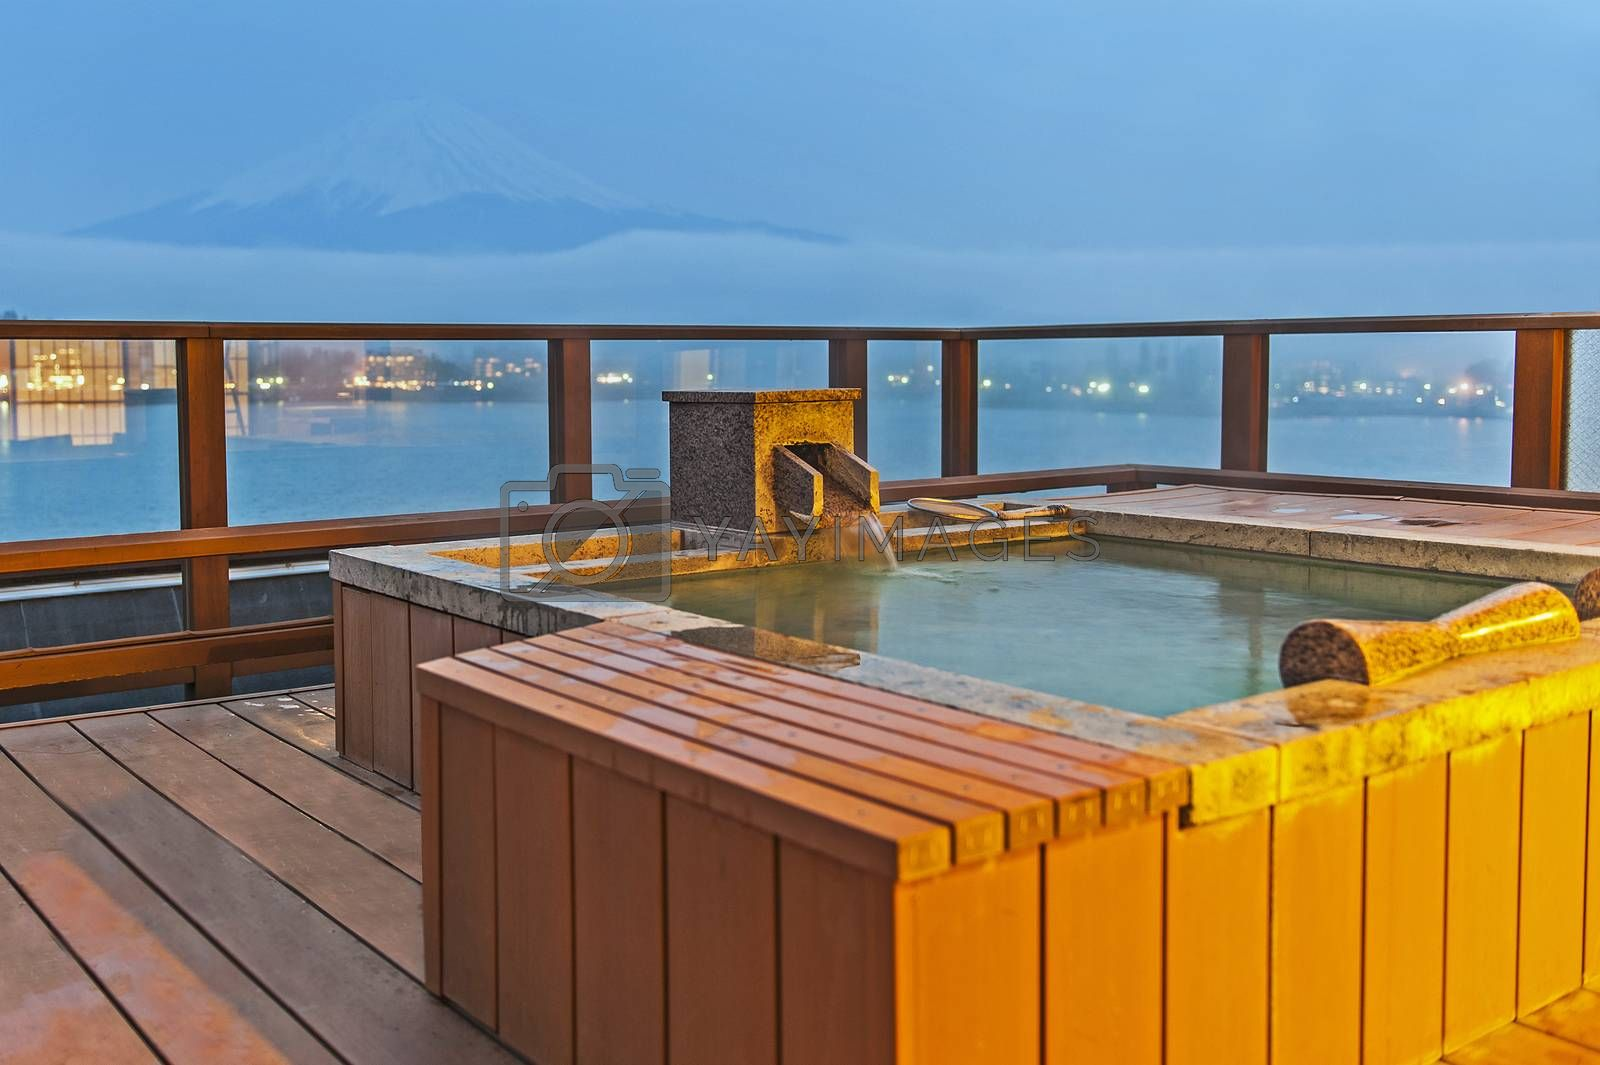 Japanese open air hot spa onsen with view of the mountain Fuji